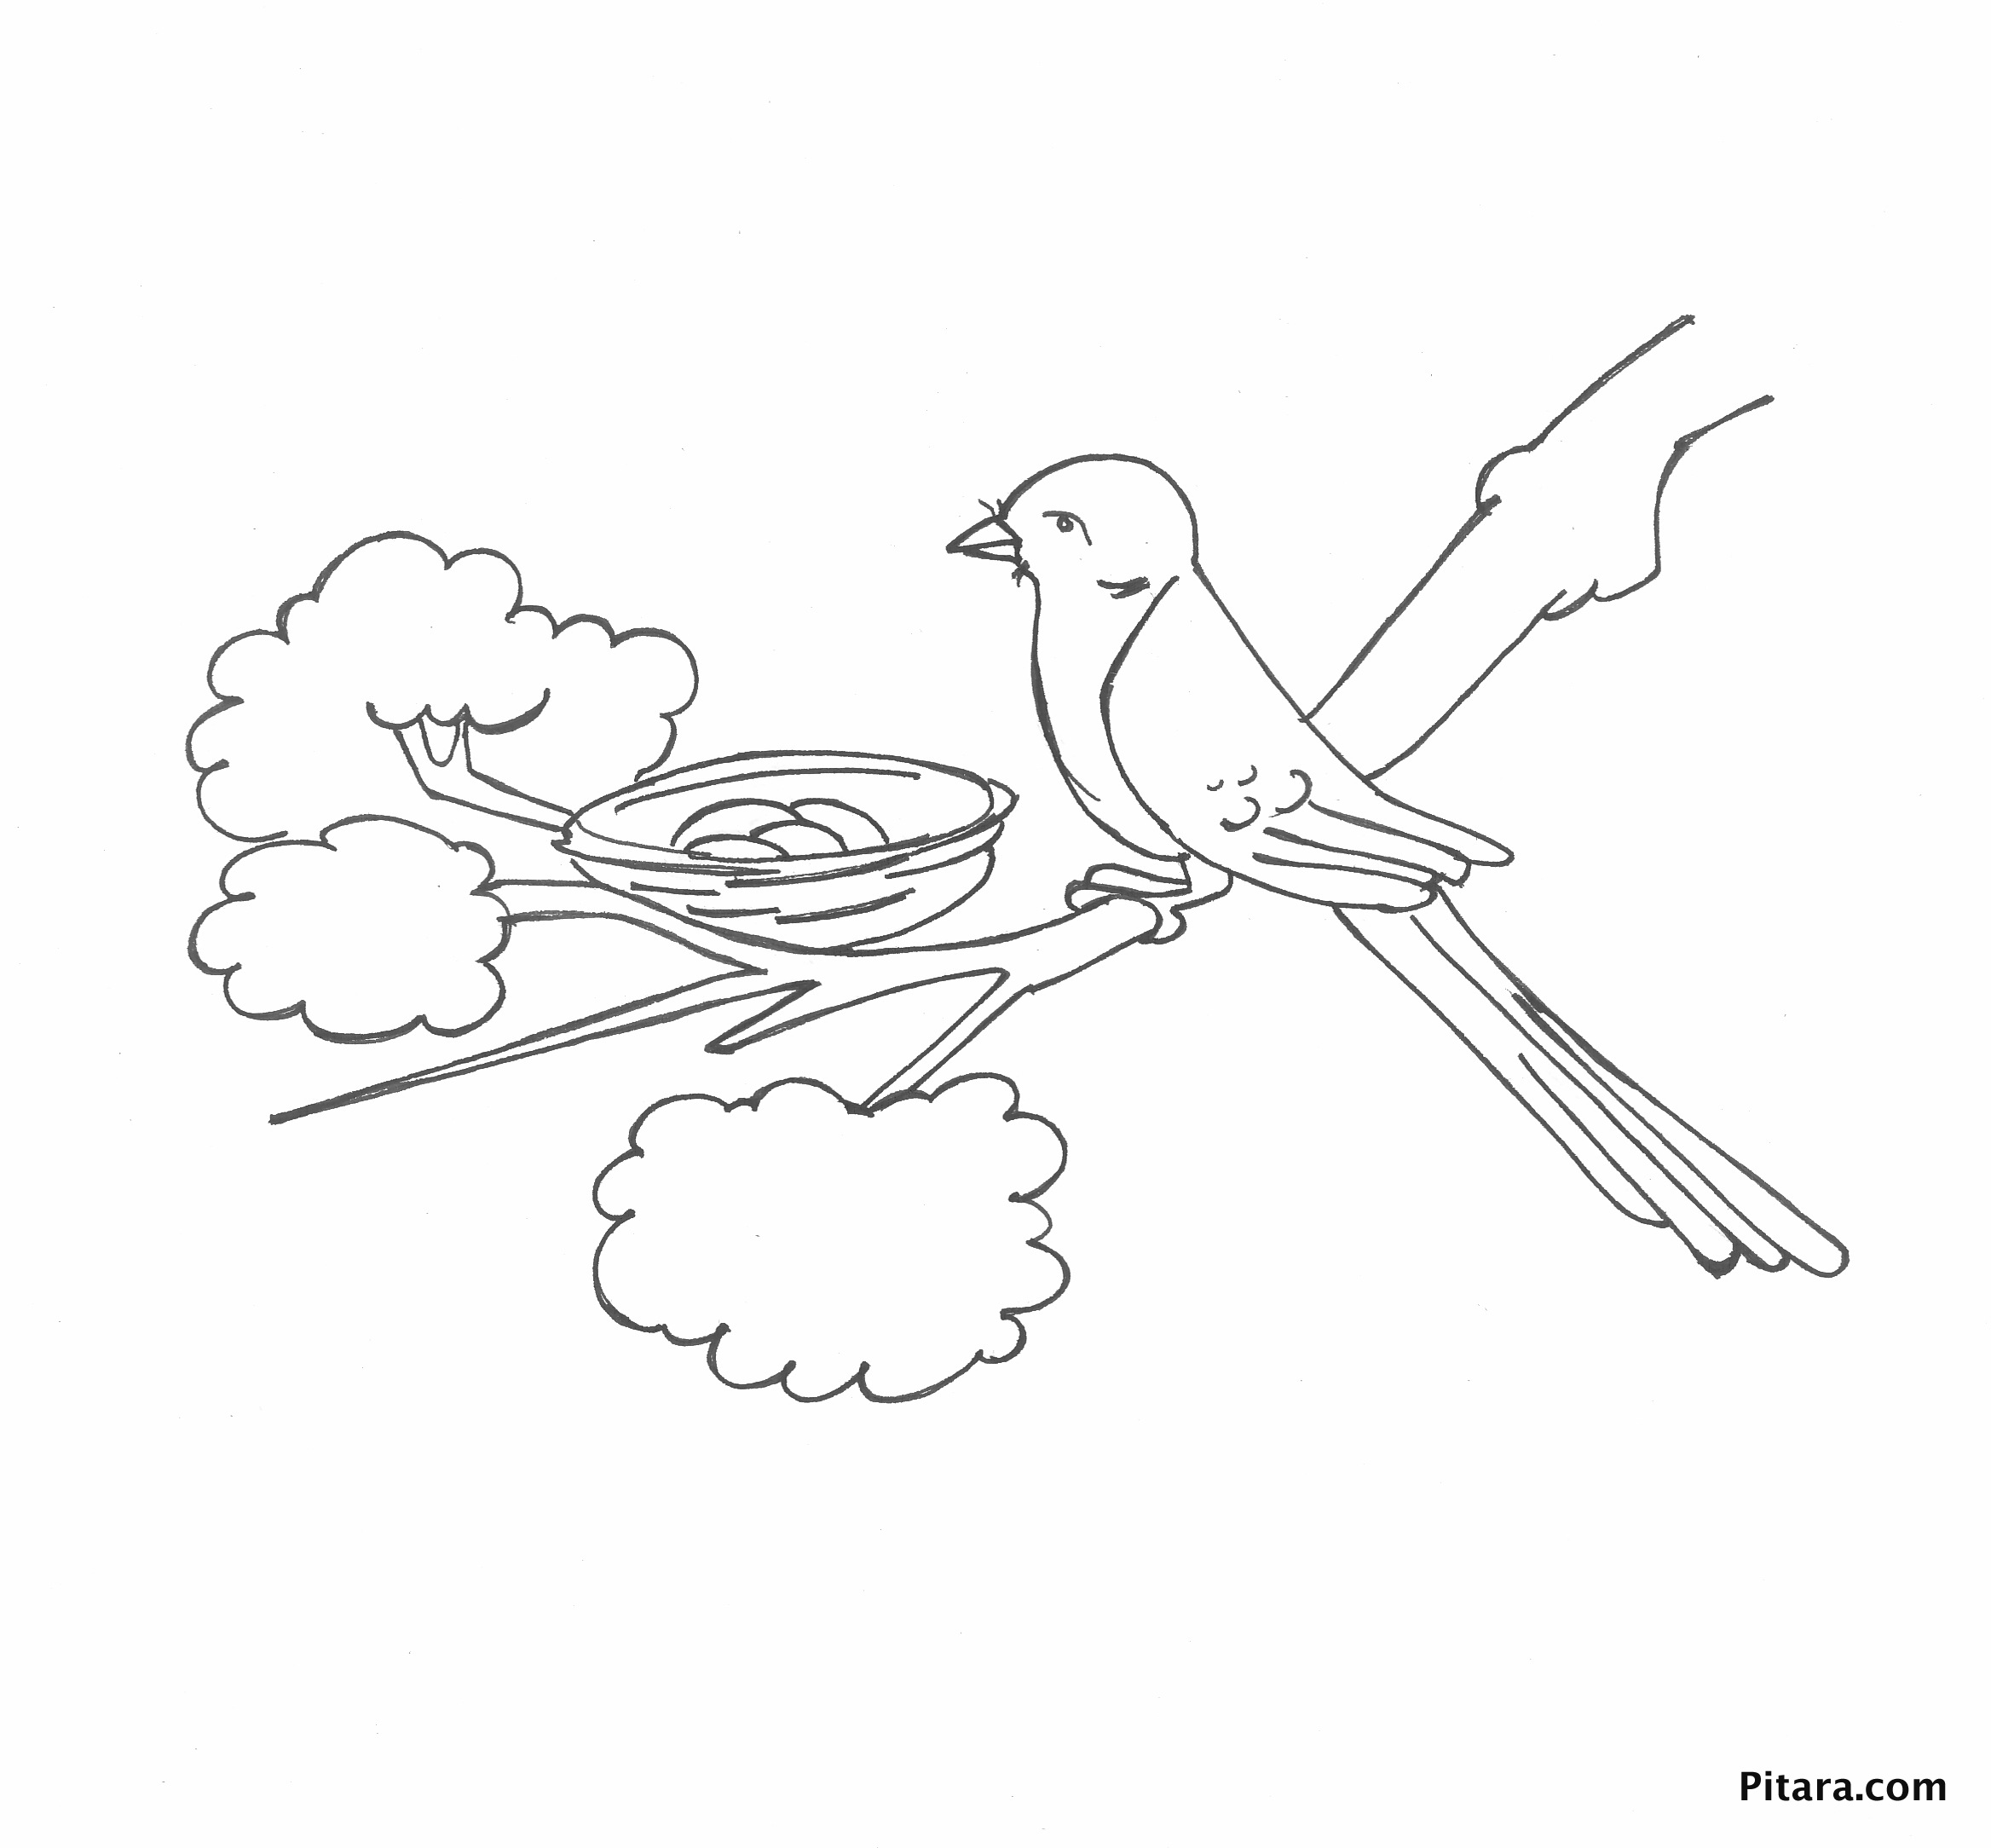 bird in the nest u2013 coloring page pitara kids network